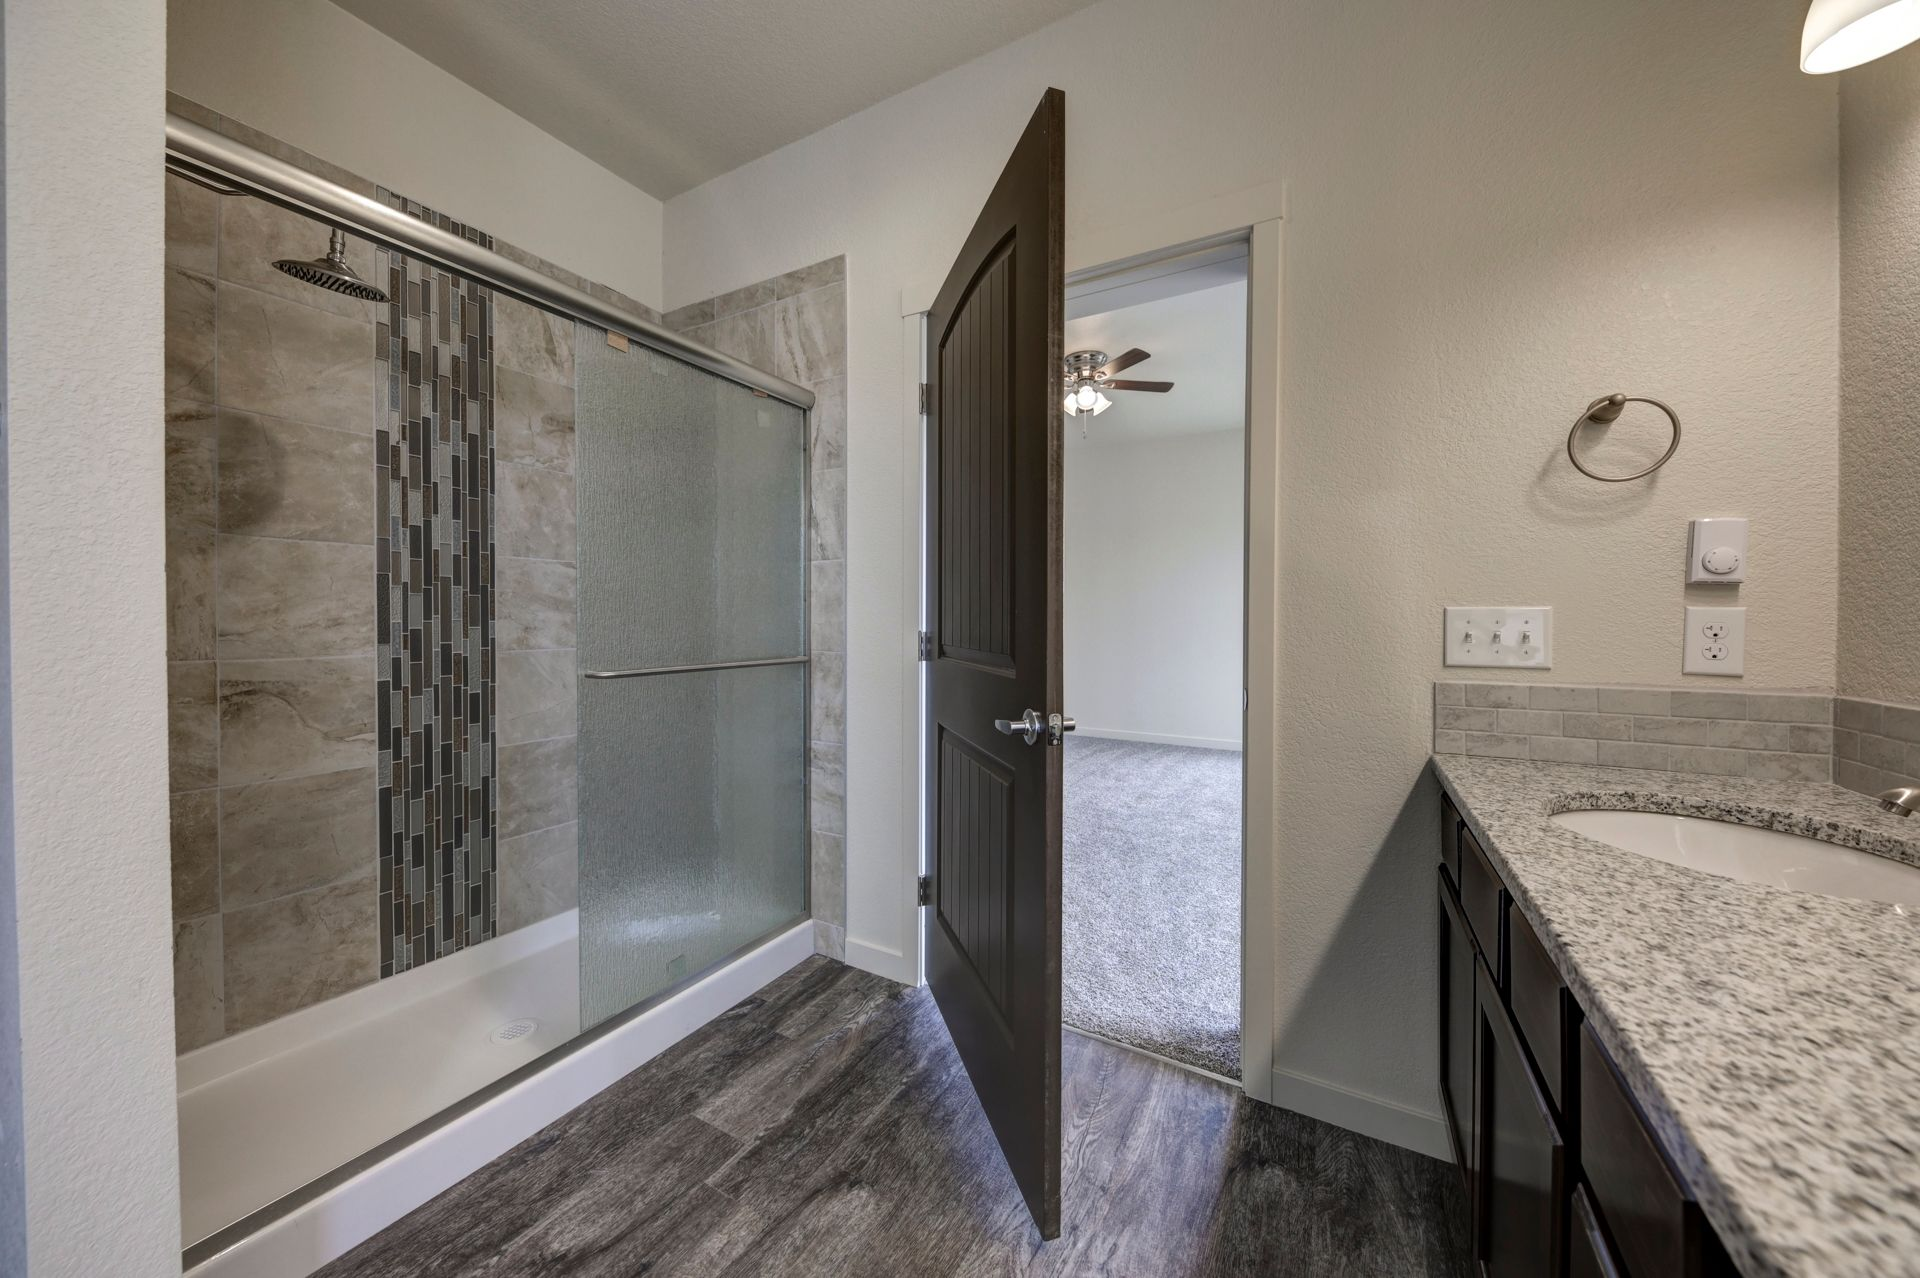 Bathroom featured in the Whisper By Westover Homes in Colorado Springs, CO